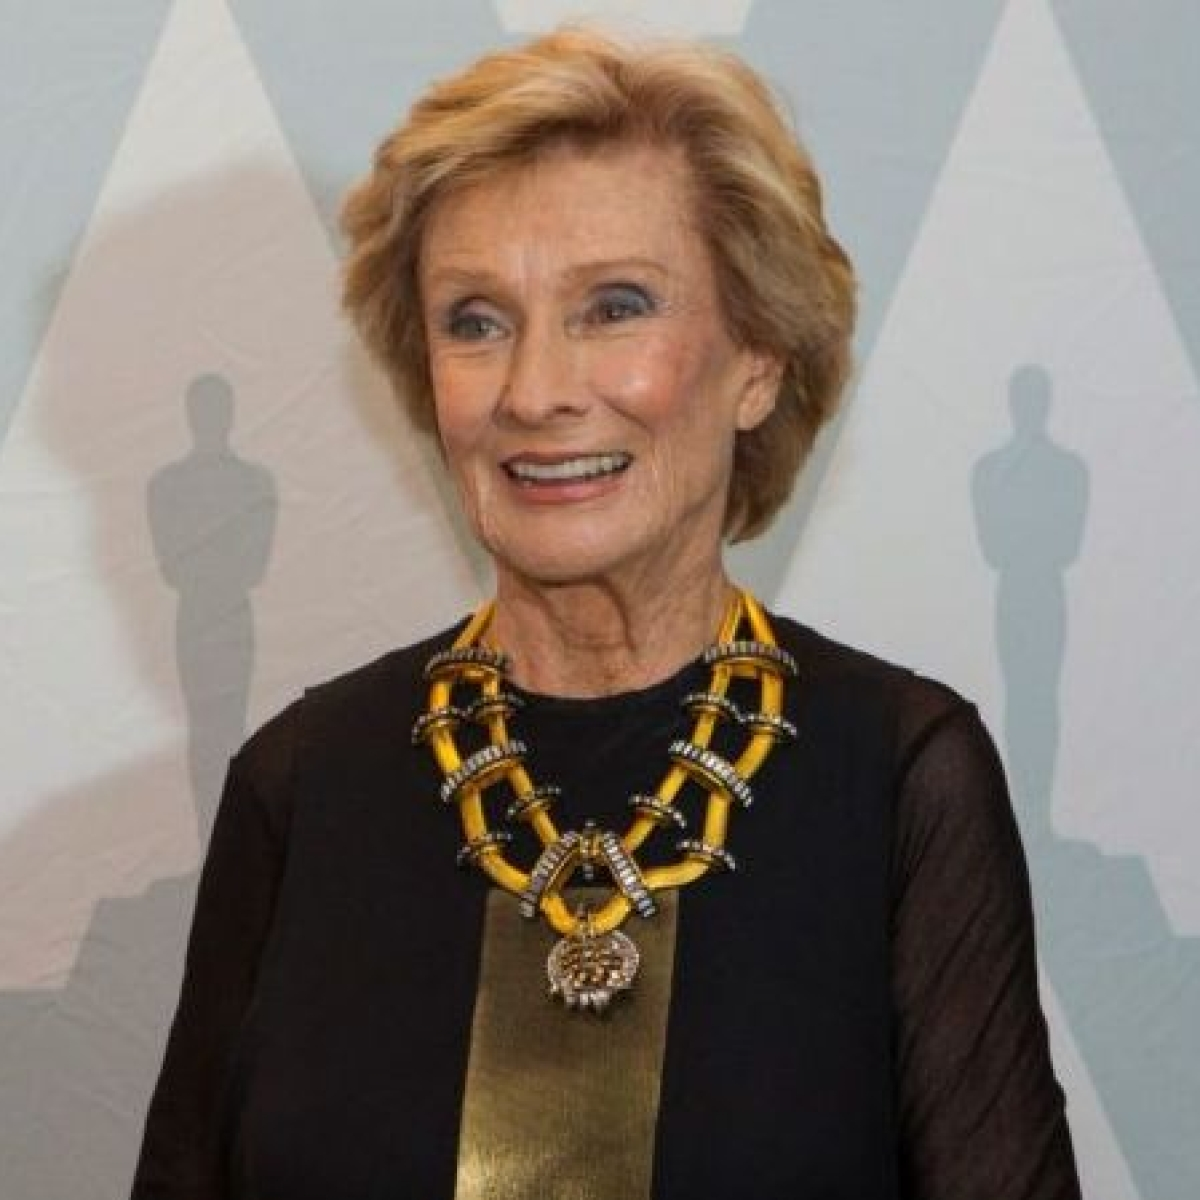 Oscar and Emmy-winning actor Cloris Leachman dies at 94